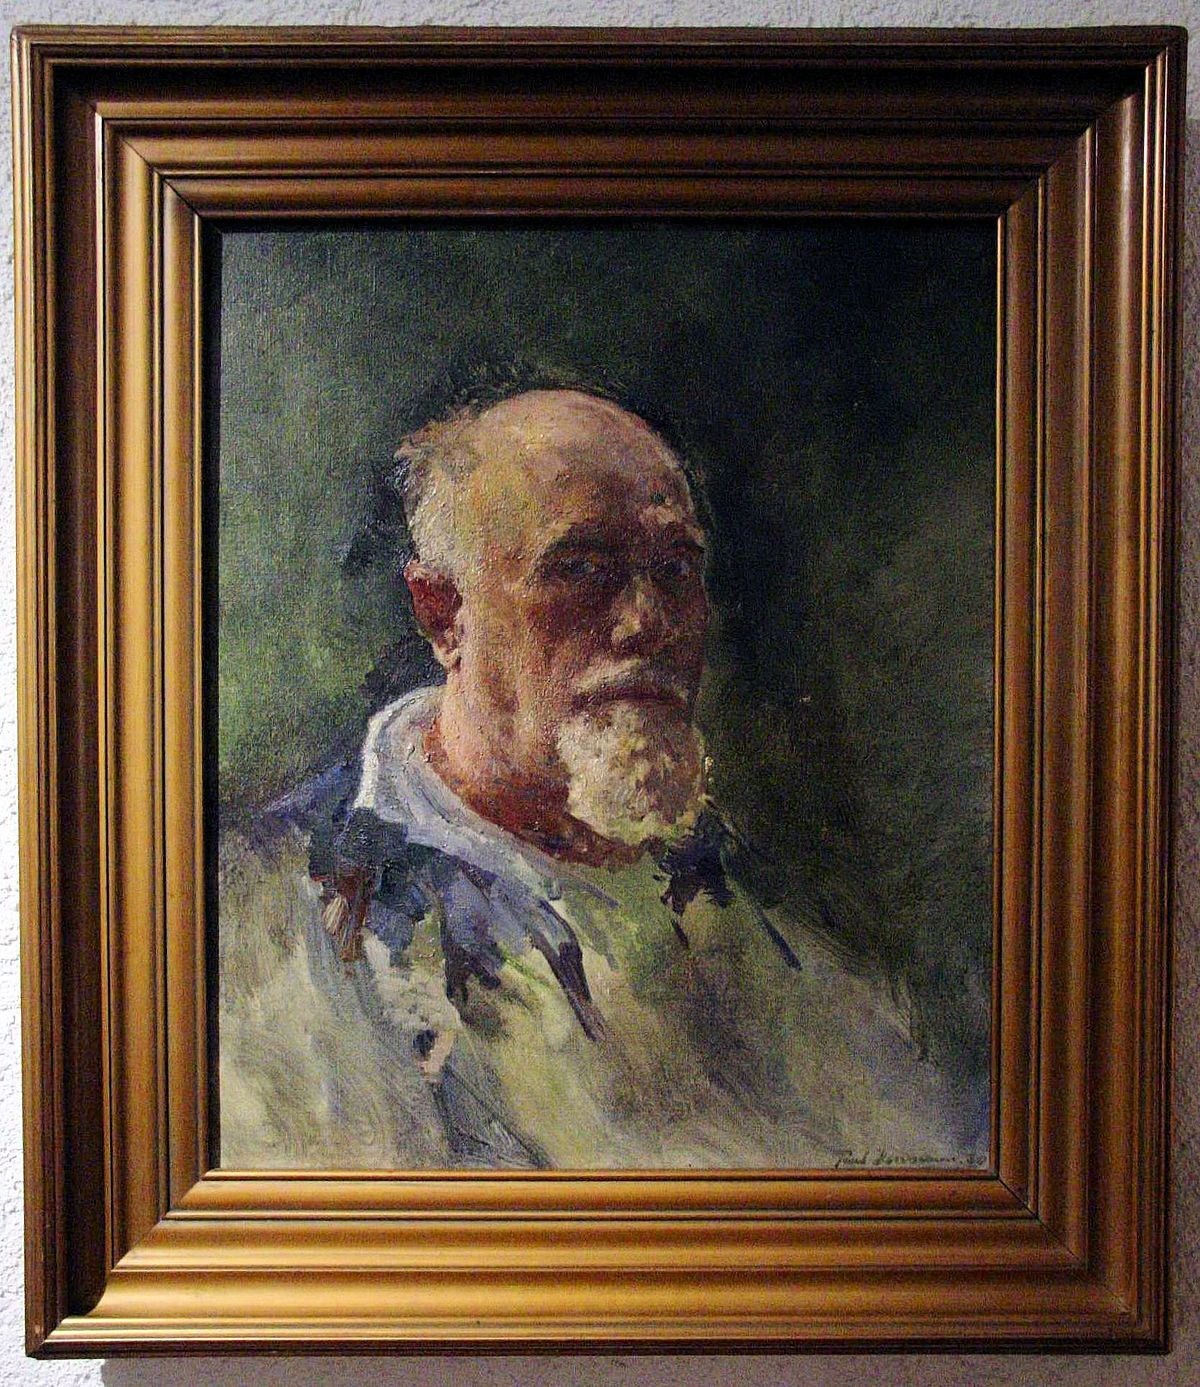 Paul herrmann peintre wikip dia for Biographie artiste peintre